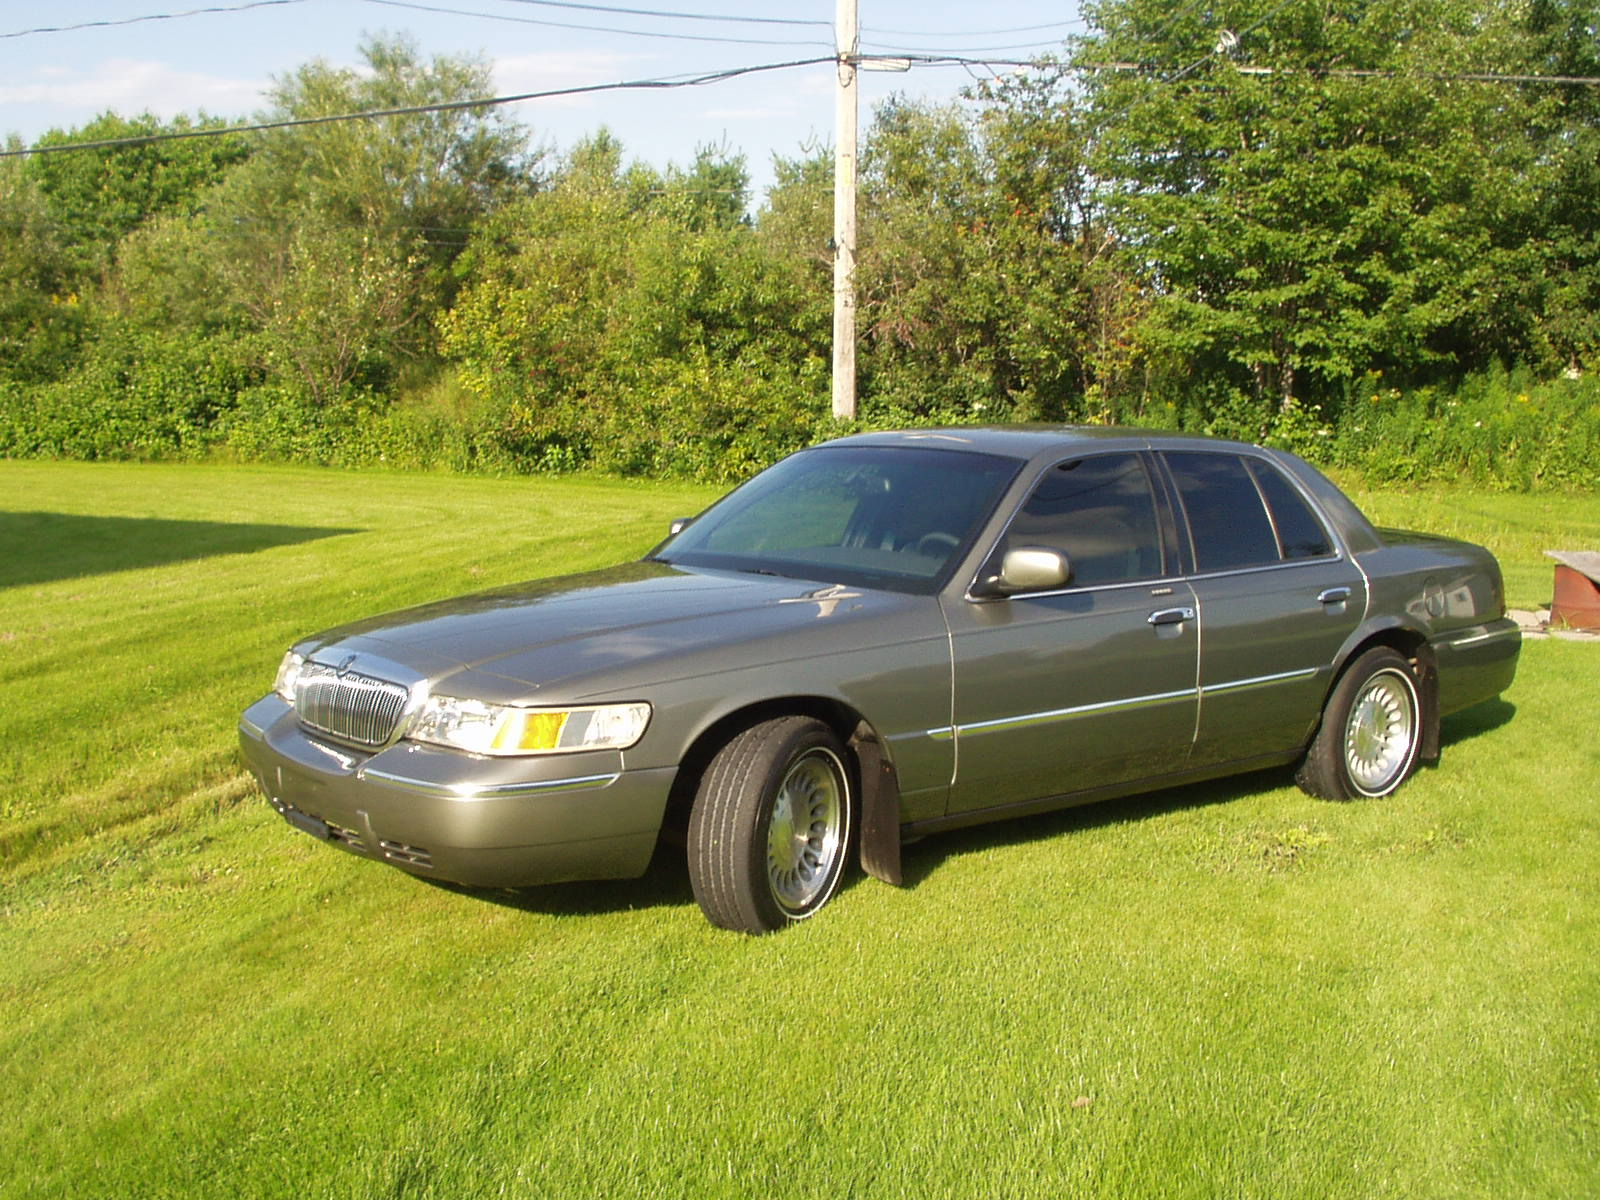 2001 Mercury Grand Marquis LS picture